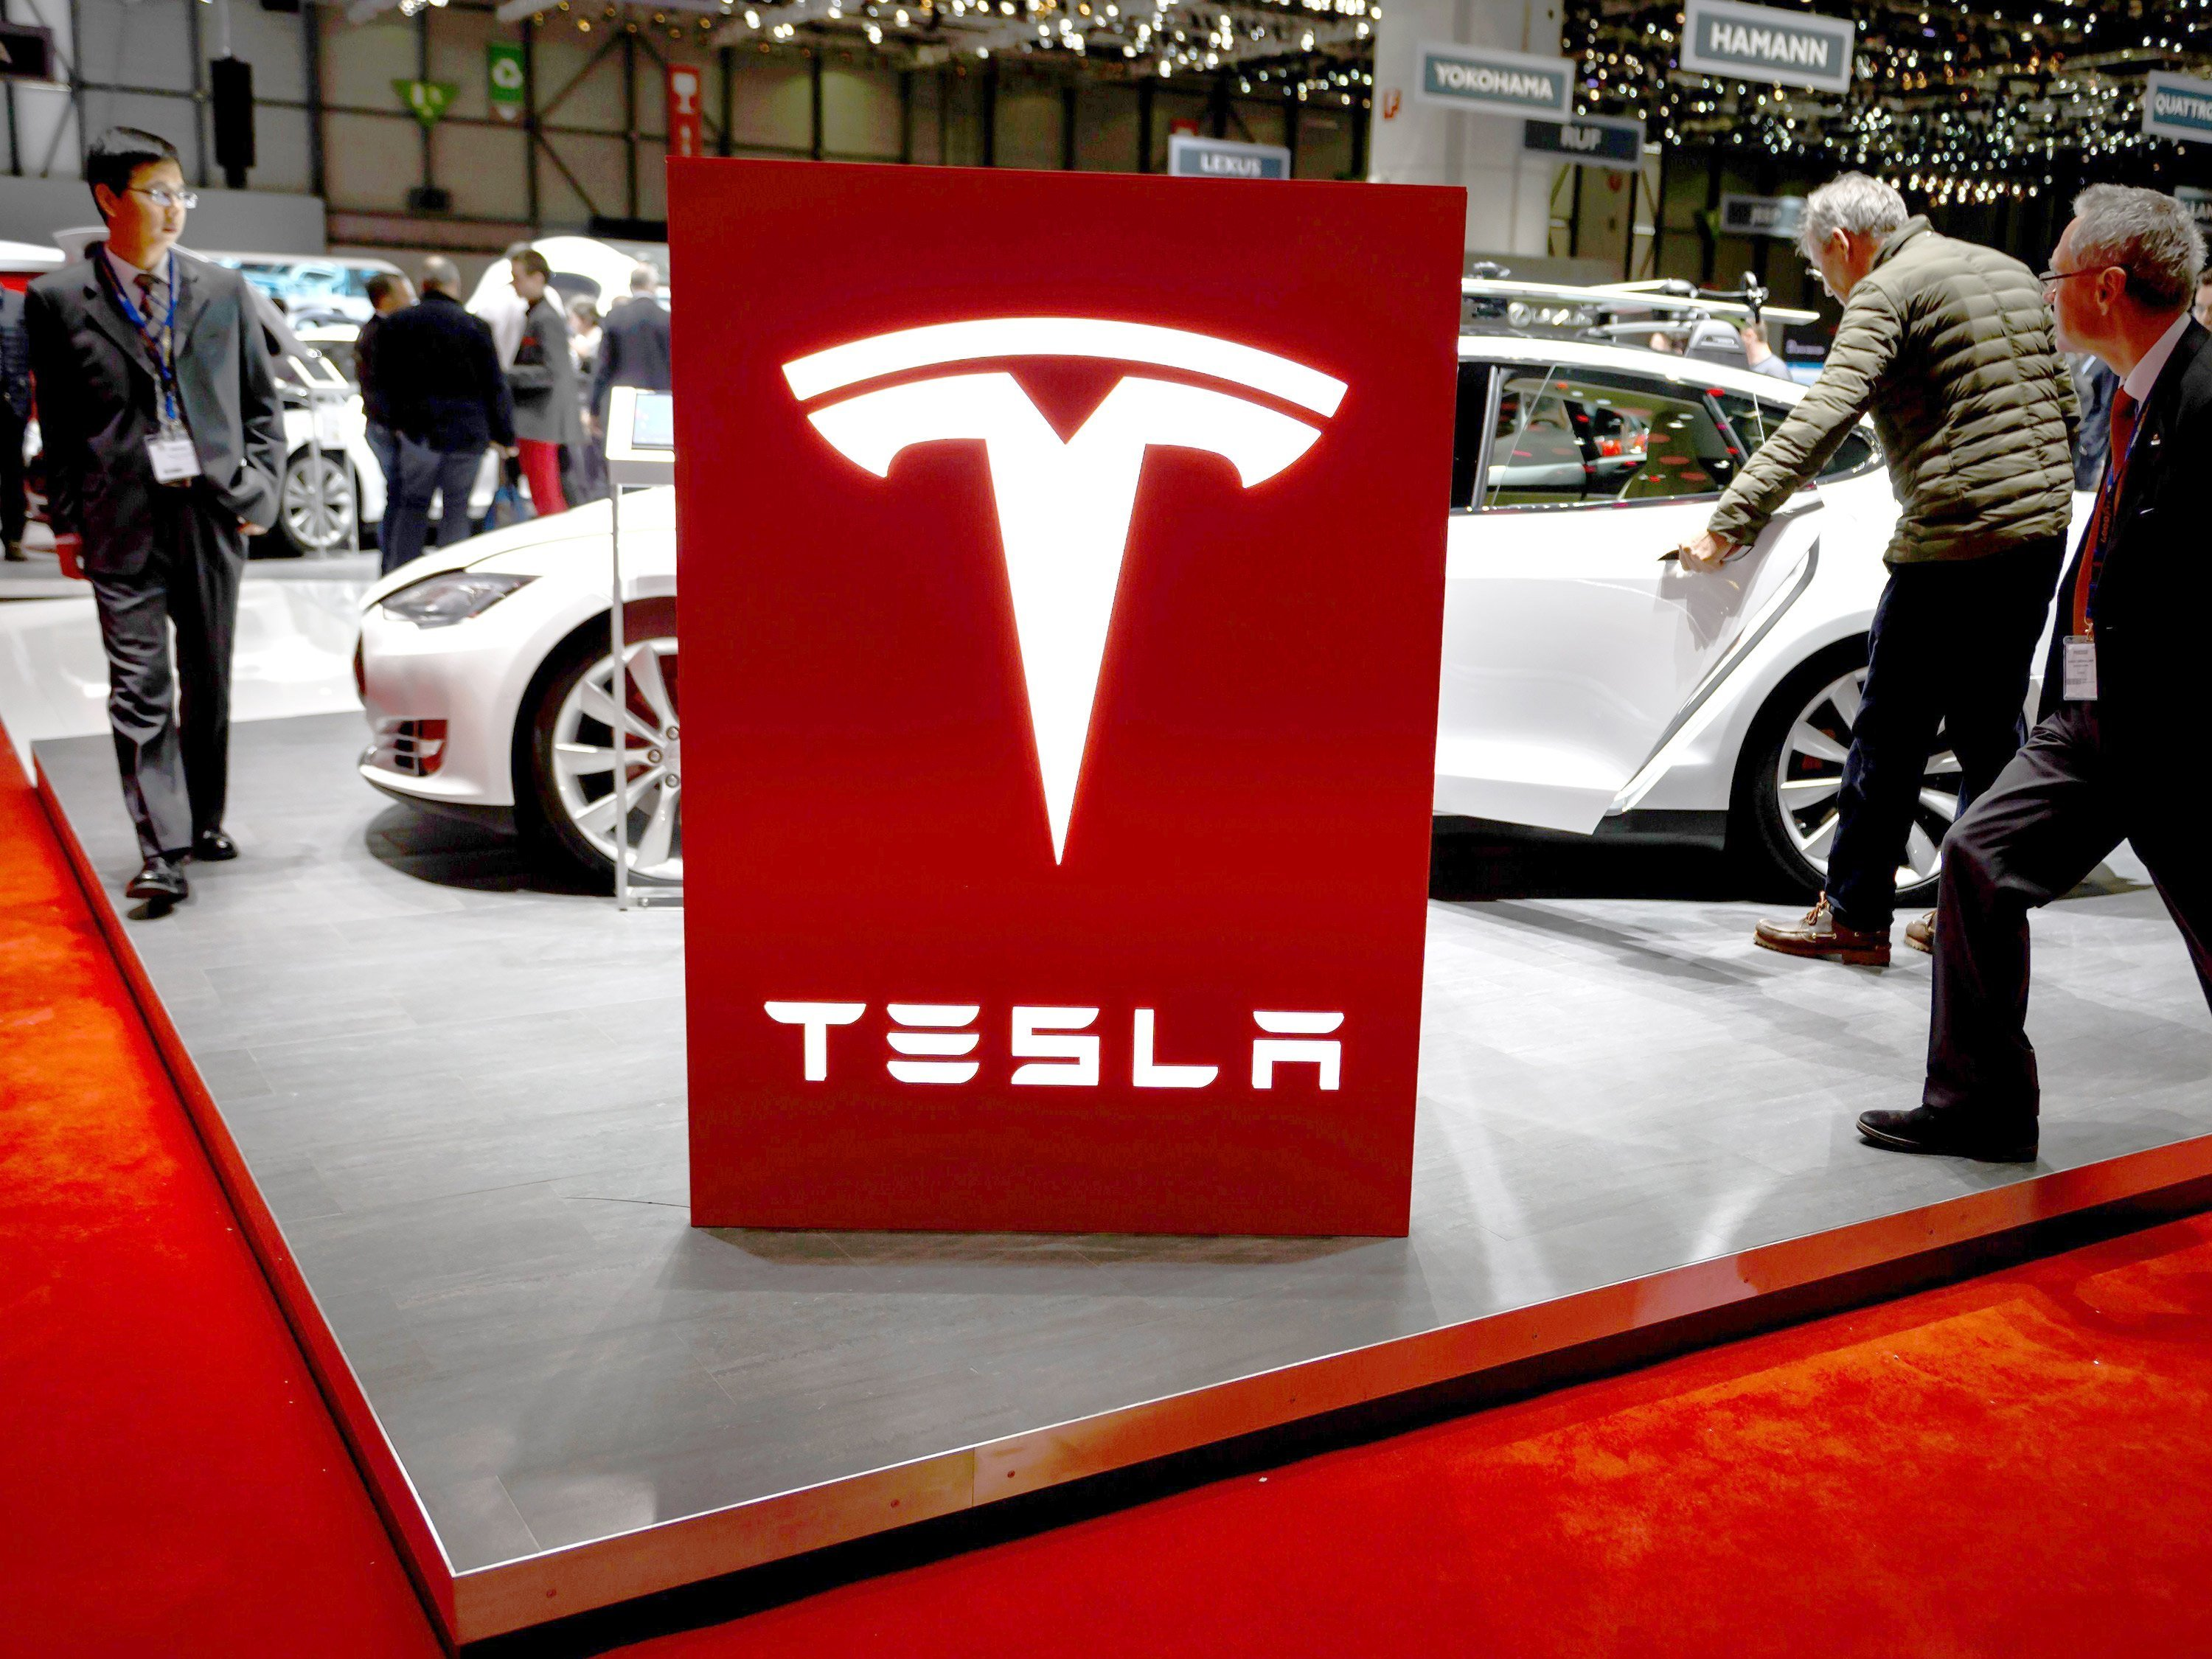 Tesla being investigation over workplace conditions